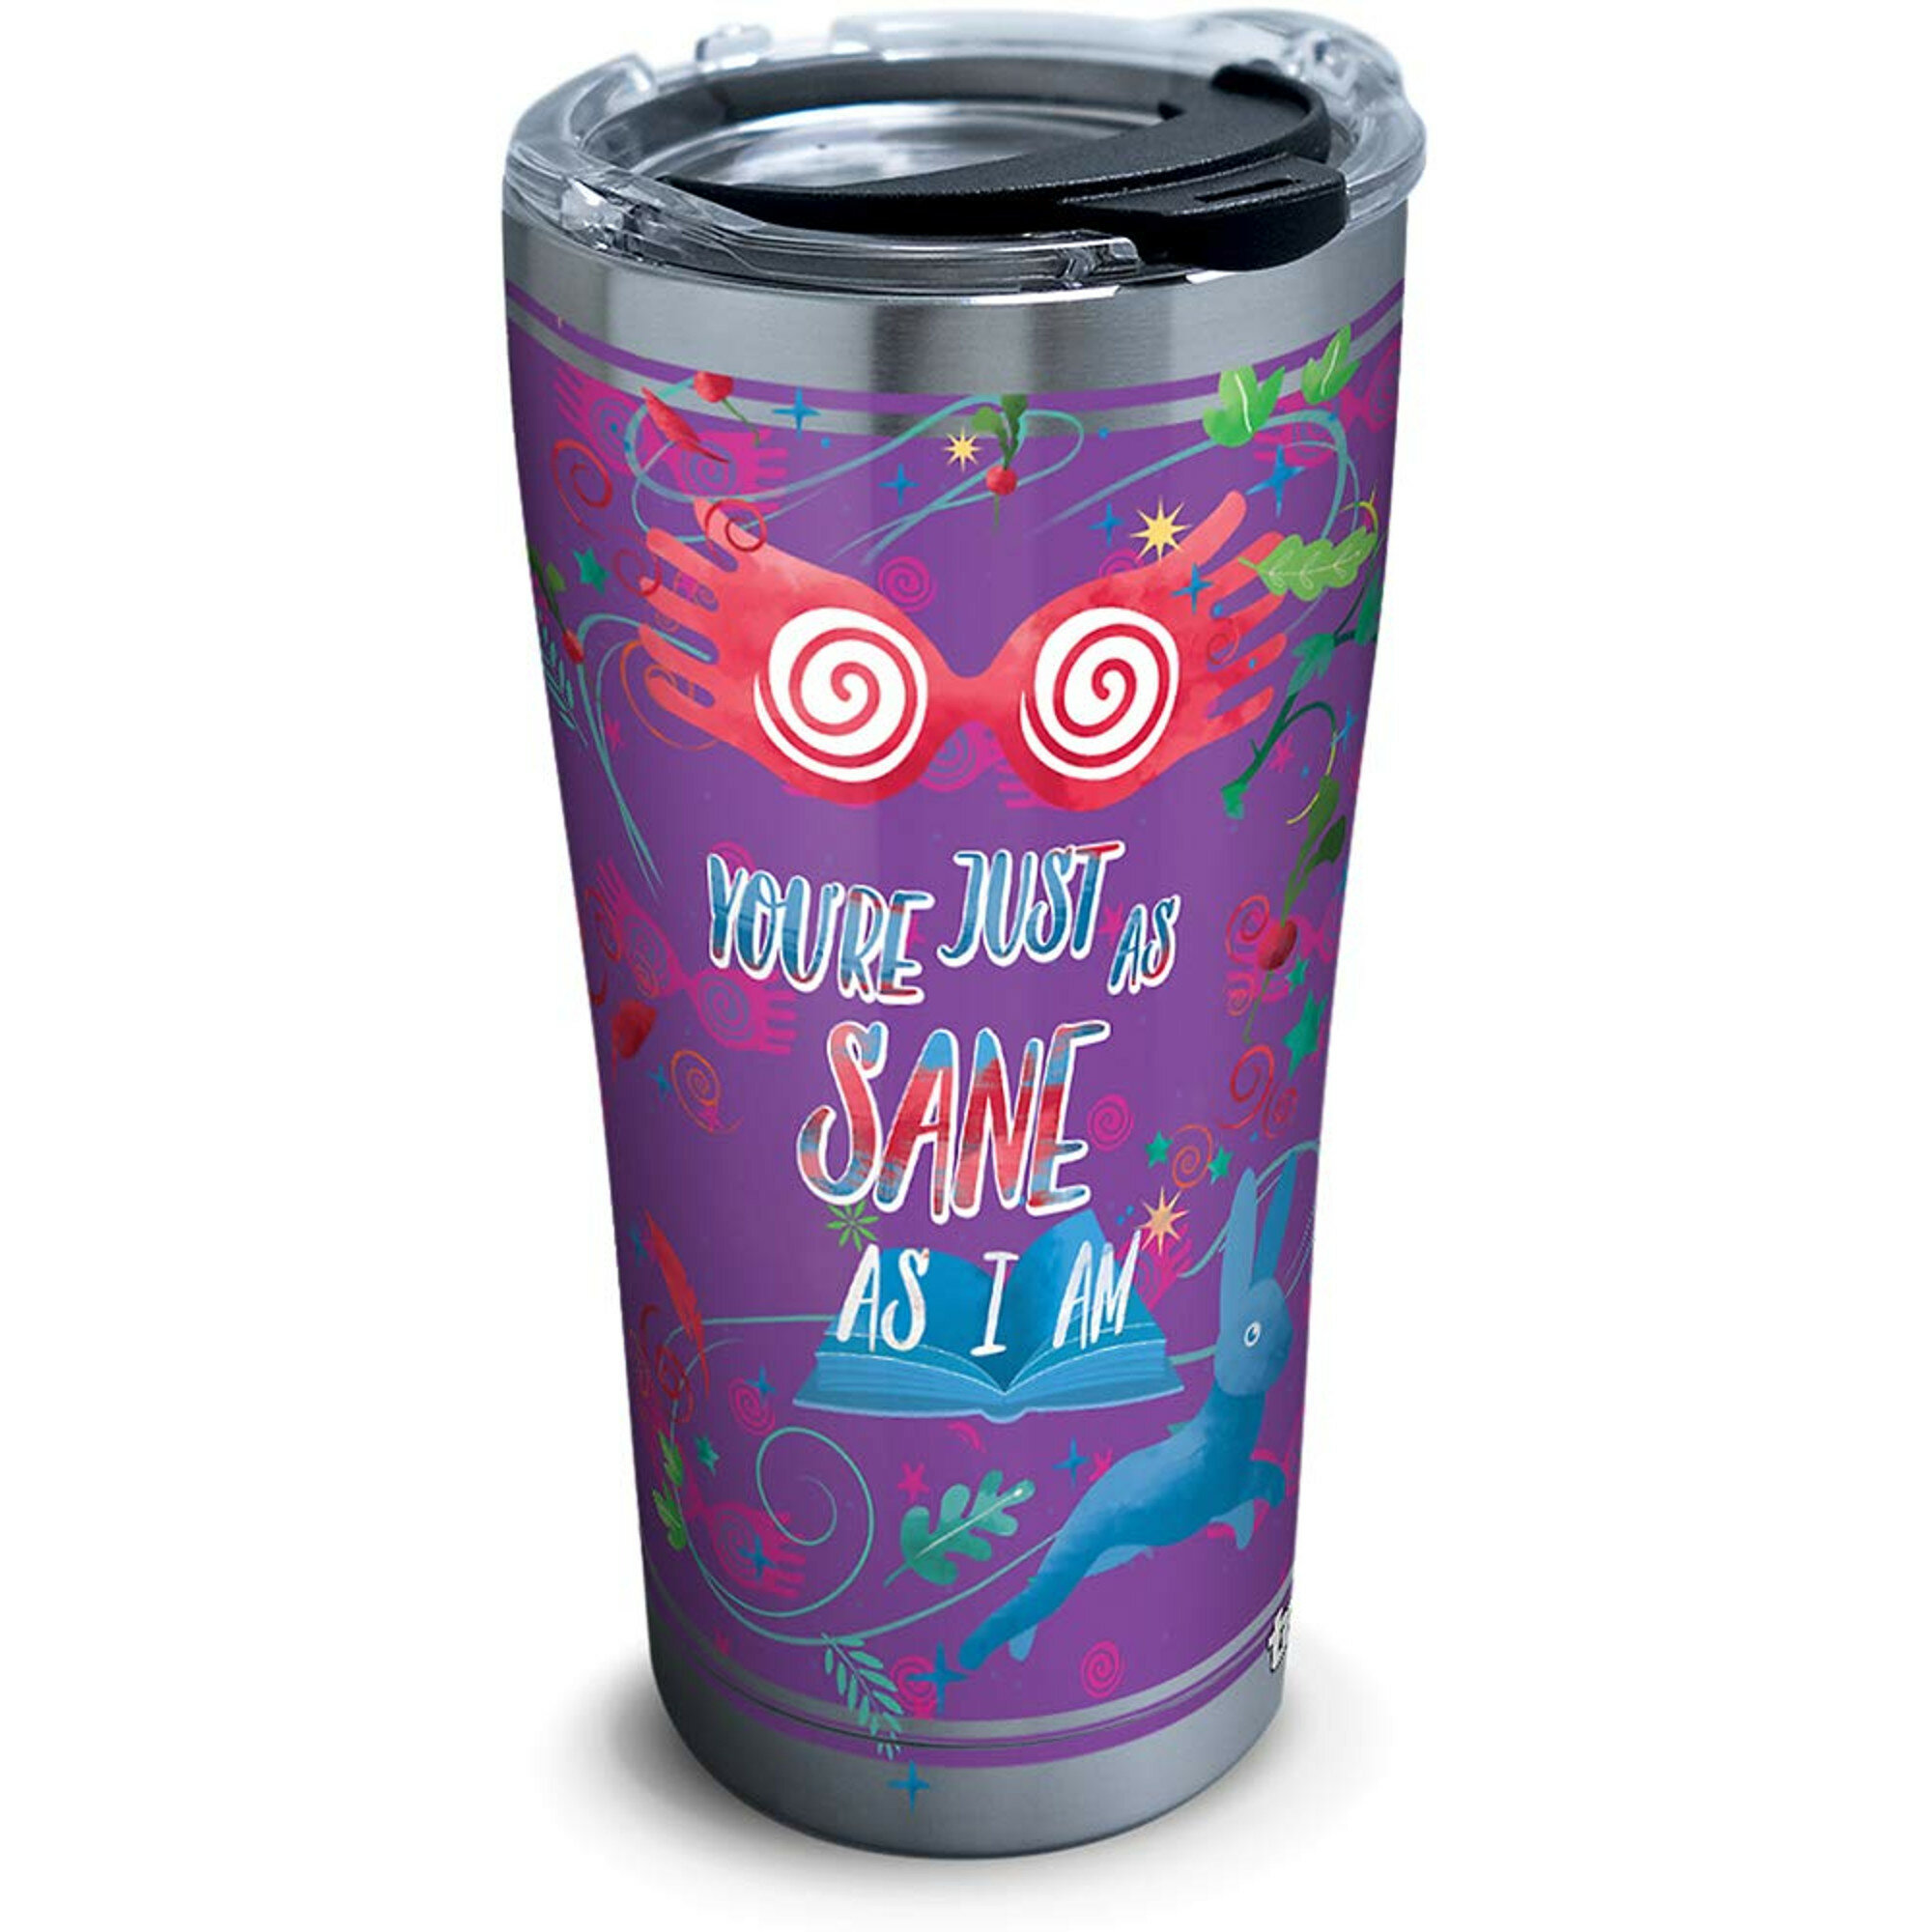 Black Slant Collections 20oz Stainless Steel Travel tumbler